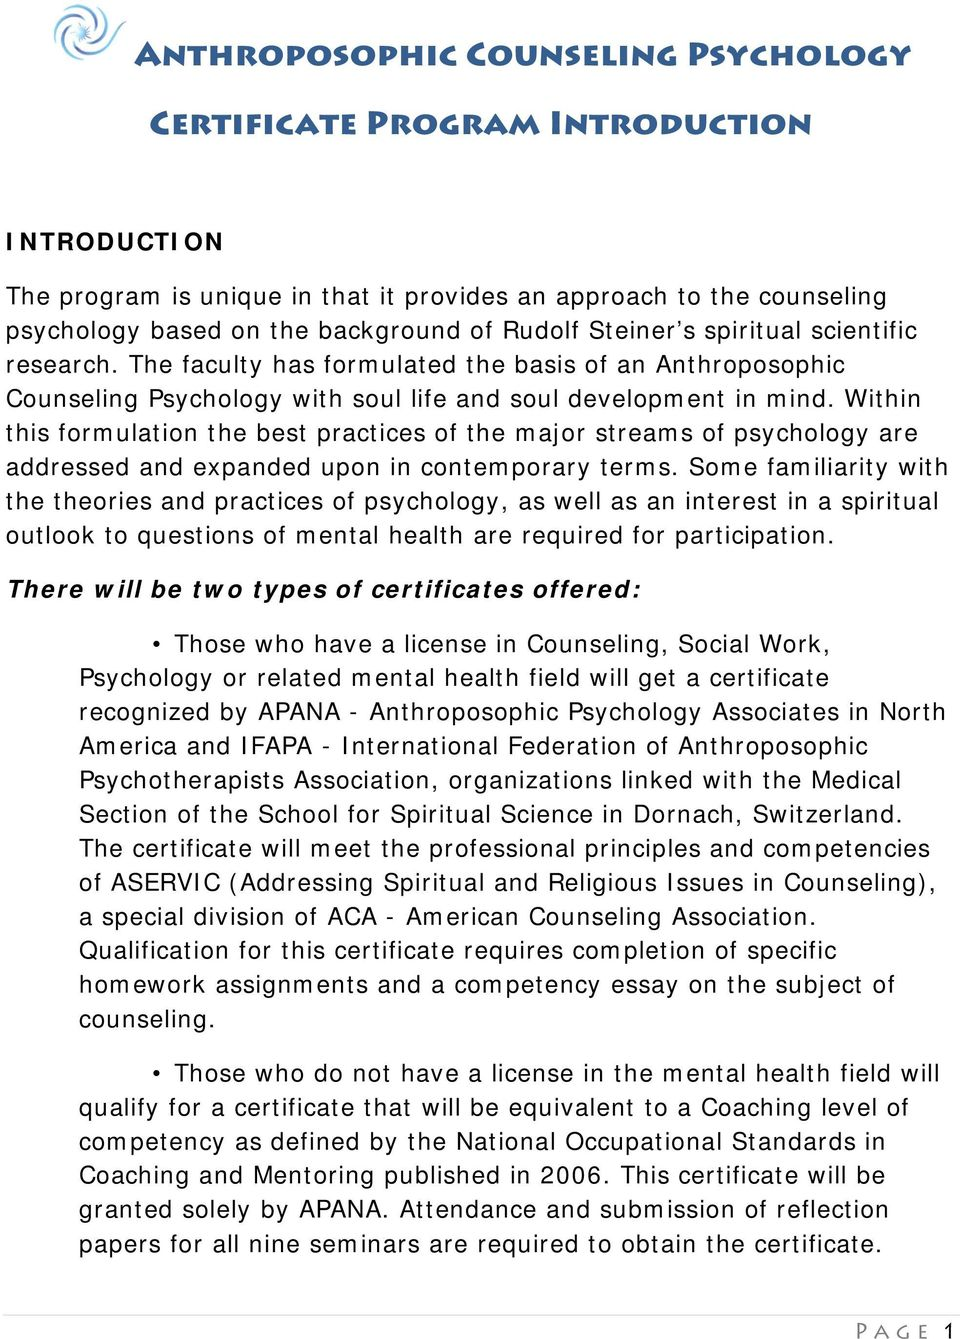 Anthroposophic Counseling Psychology Certificate Program Pdf